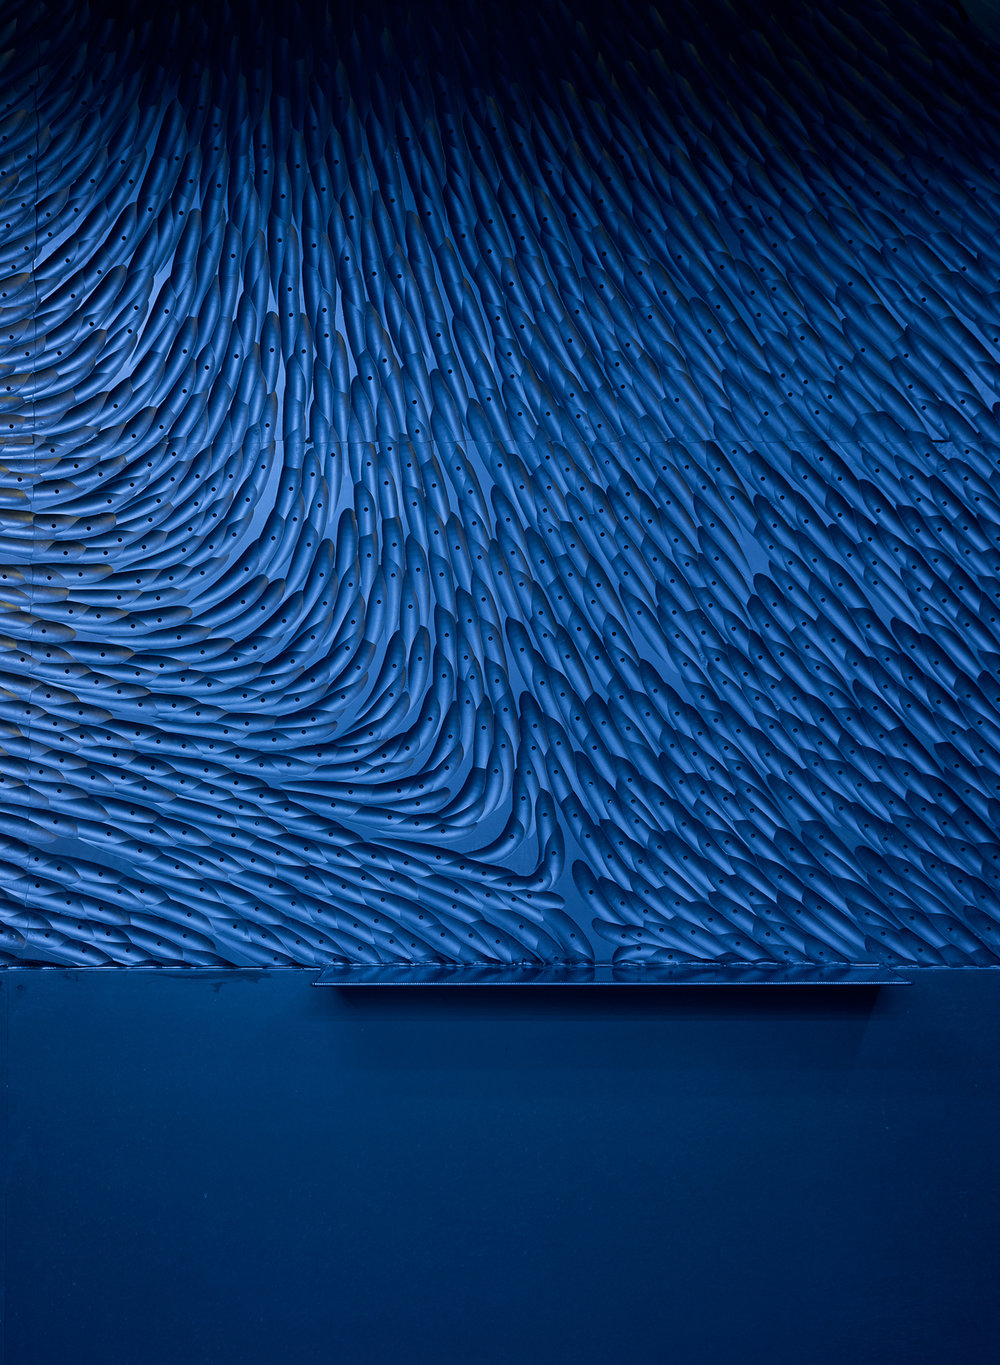 Unique wall pattern design for nightclub interior